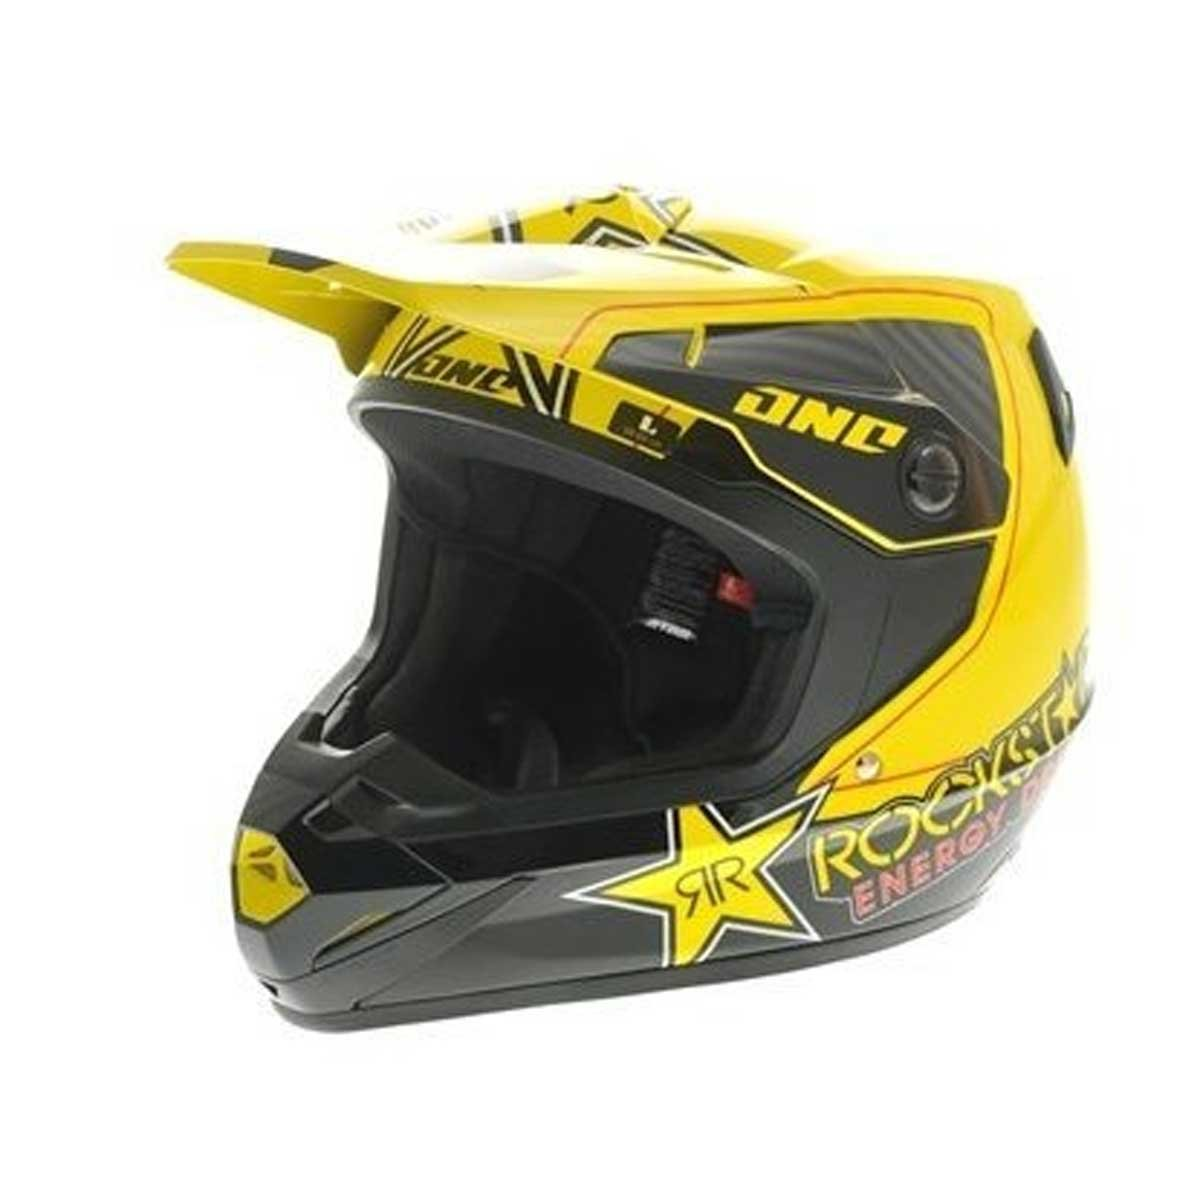 Amazon.com: One Industries Atom Rockstar Helmet (Yellow, Small): Automotive